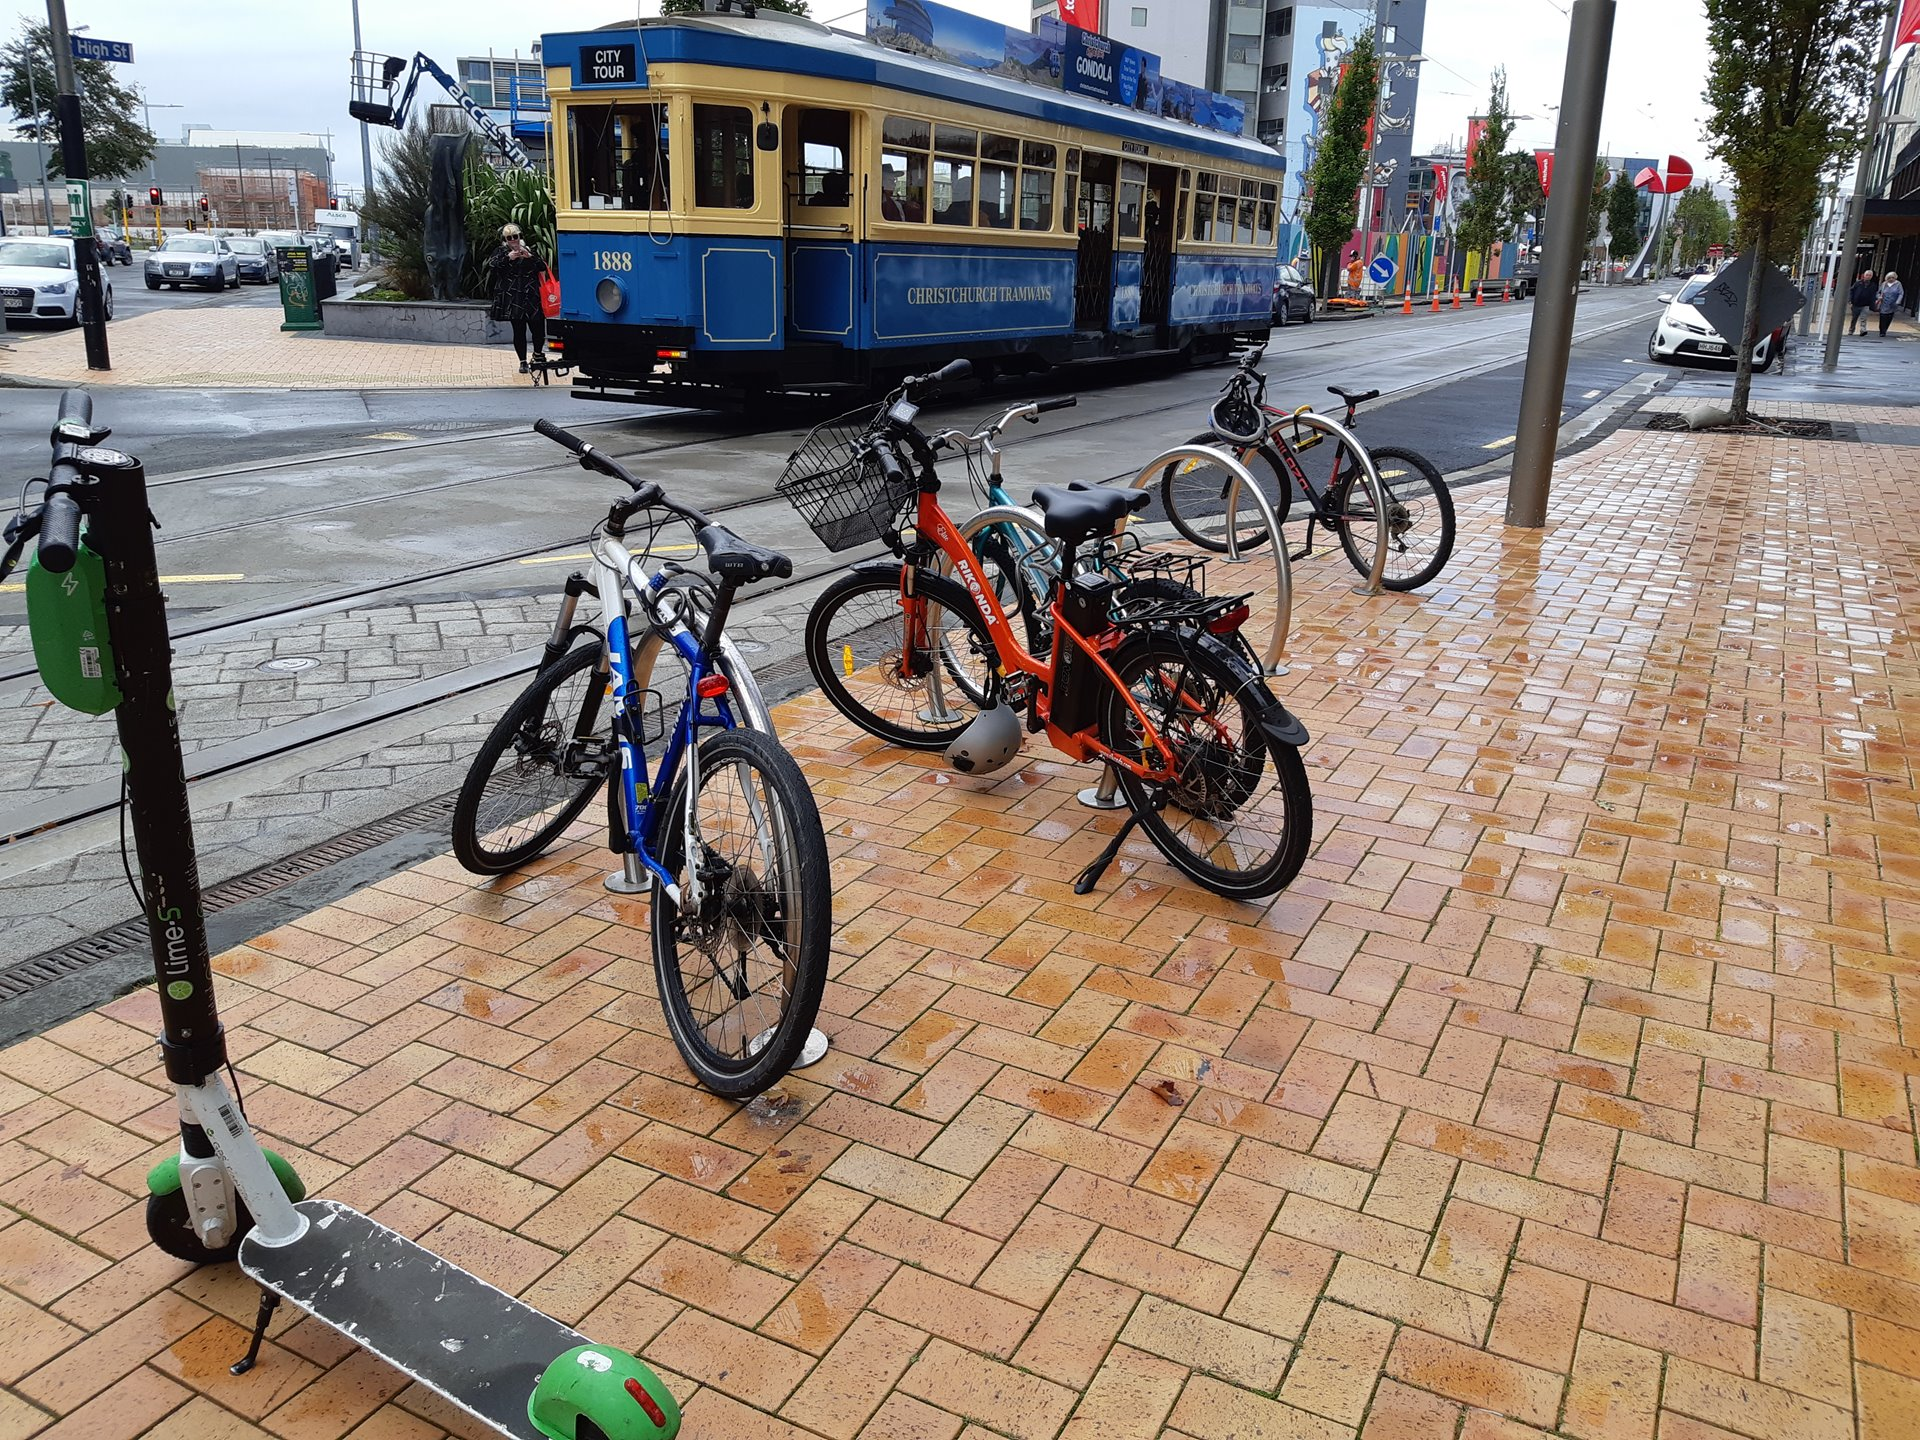 Transport options in Christchurch